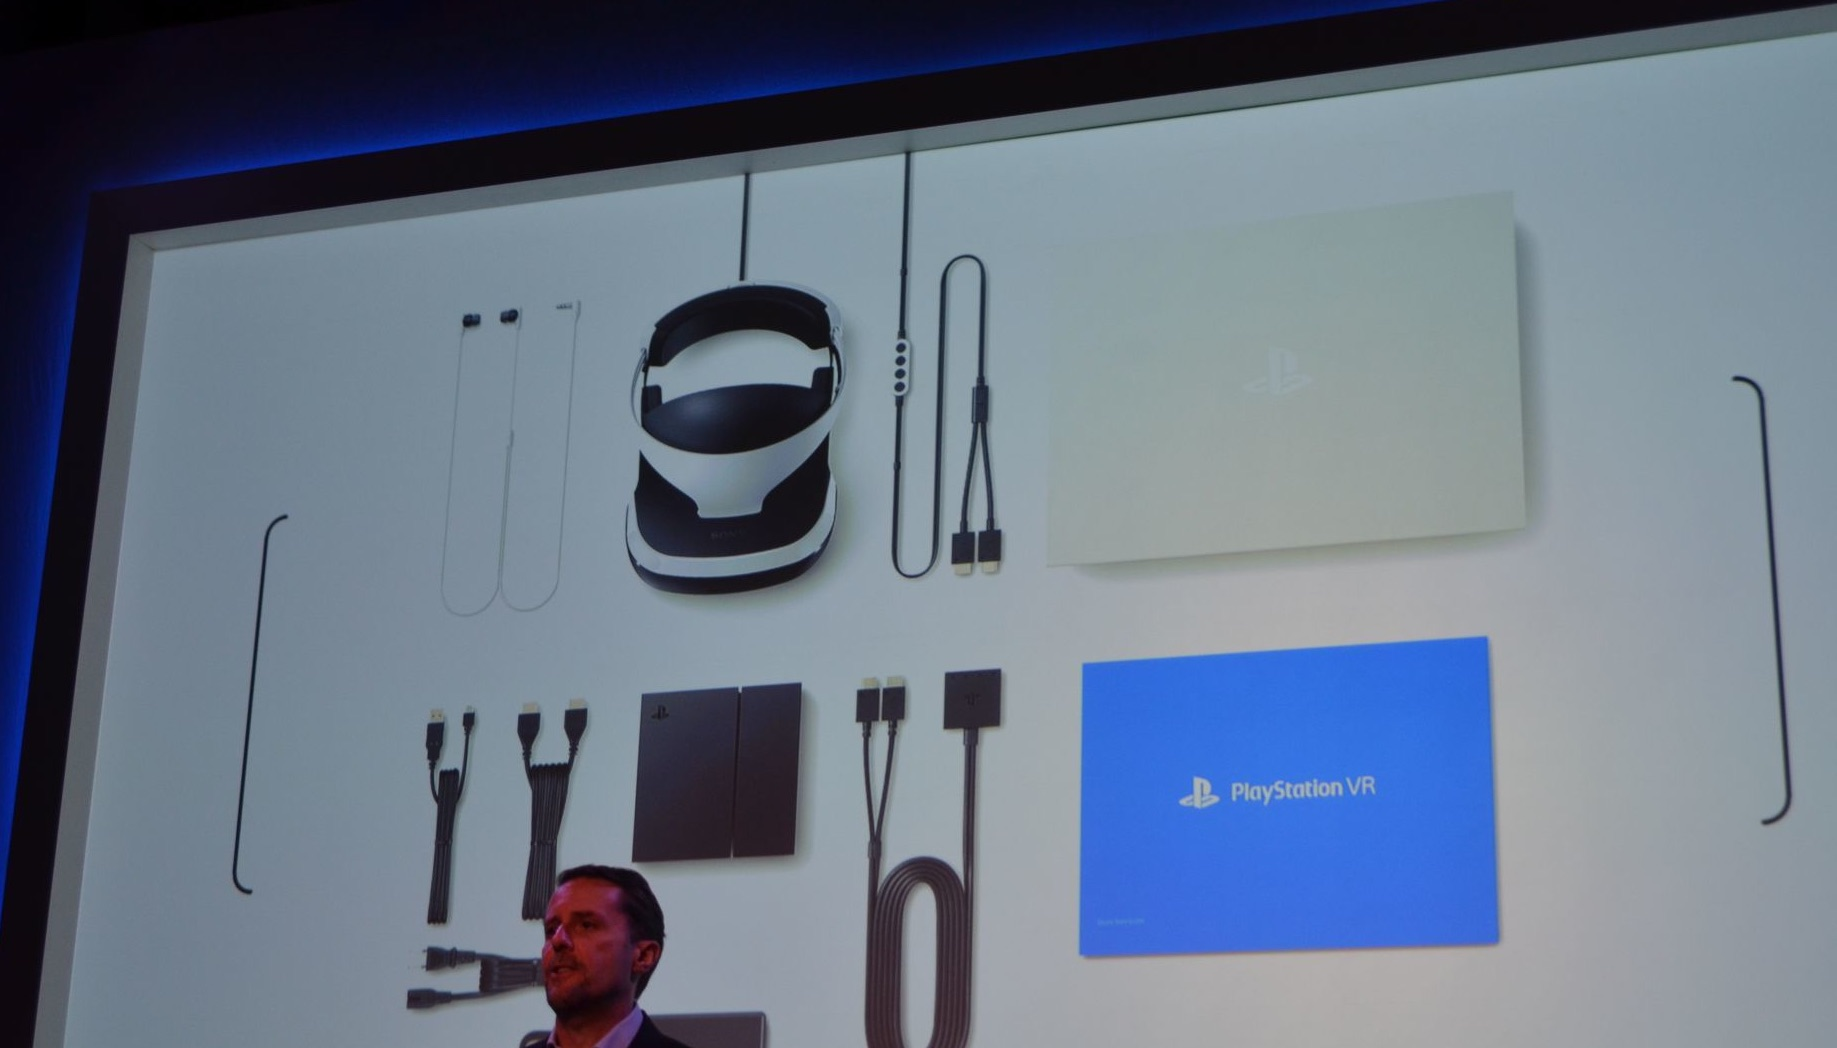 playstation vr final package